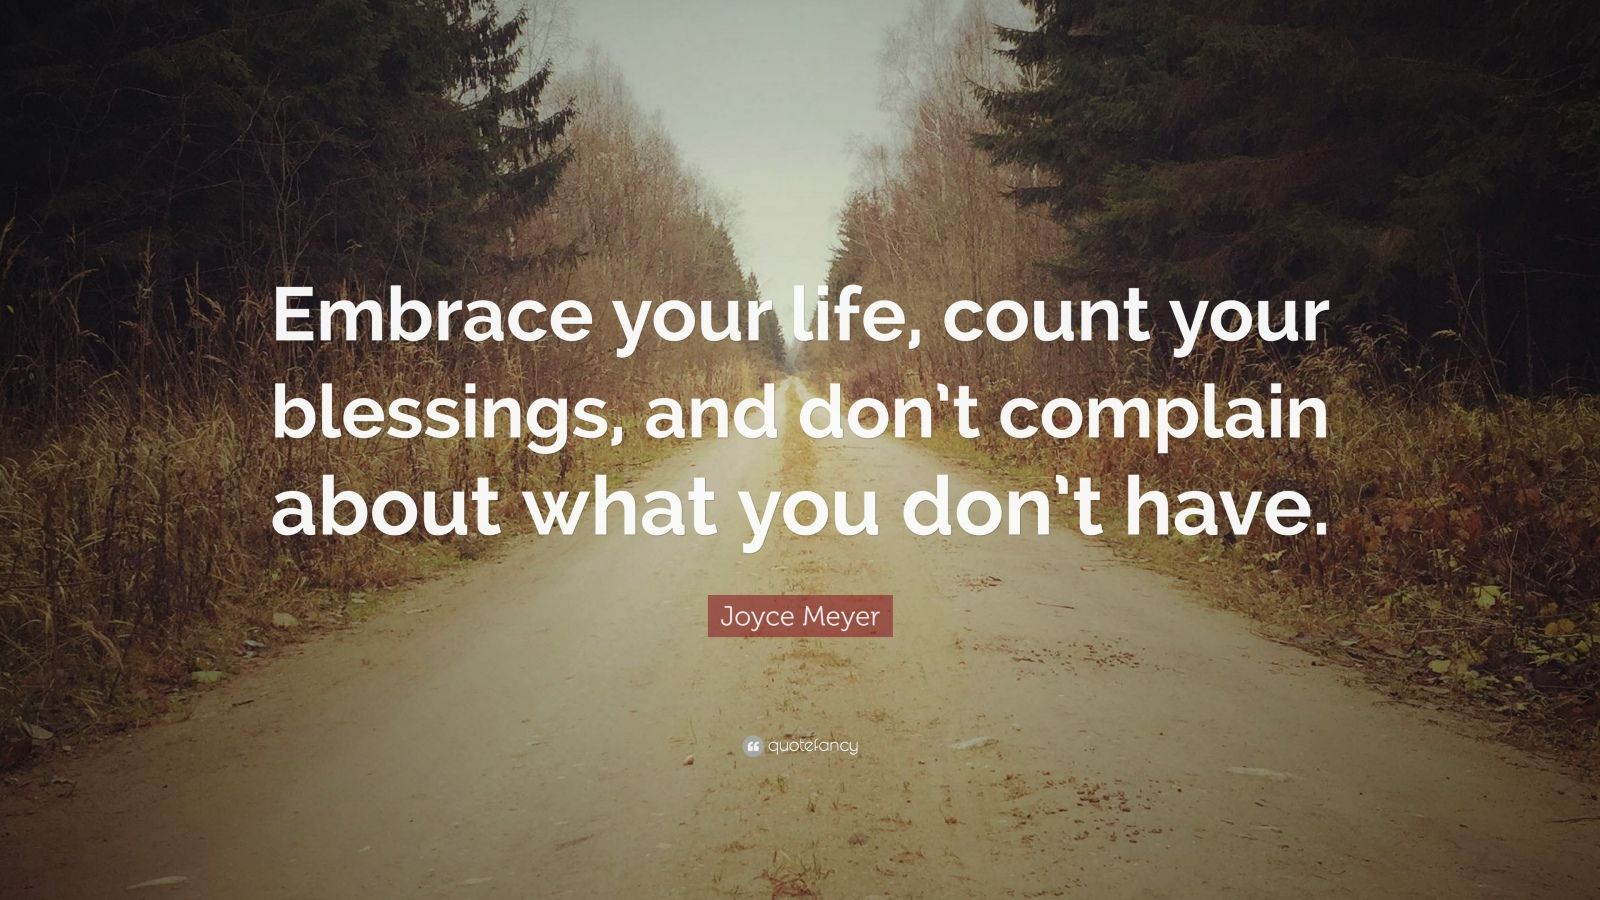 """Joyce Meyer Quote: """"Embrace your life, count your blessings, and don't complain about what you don't have."""""""